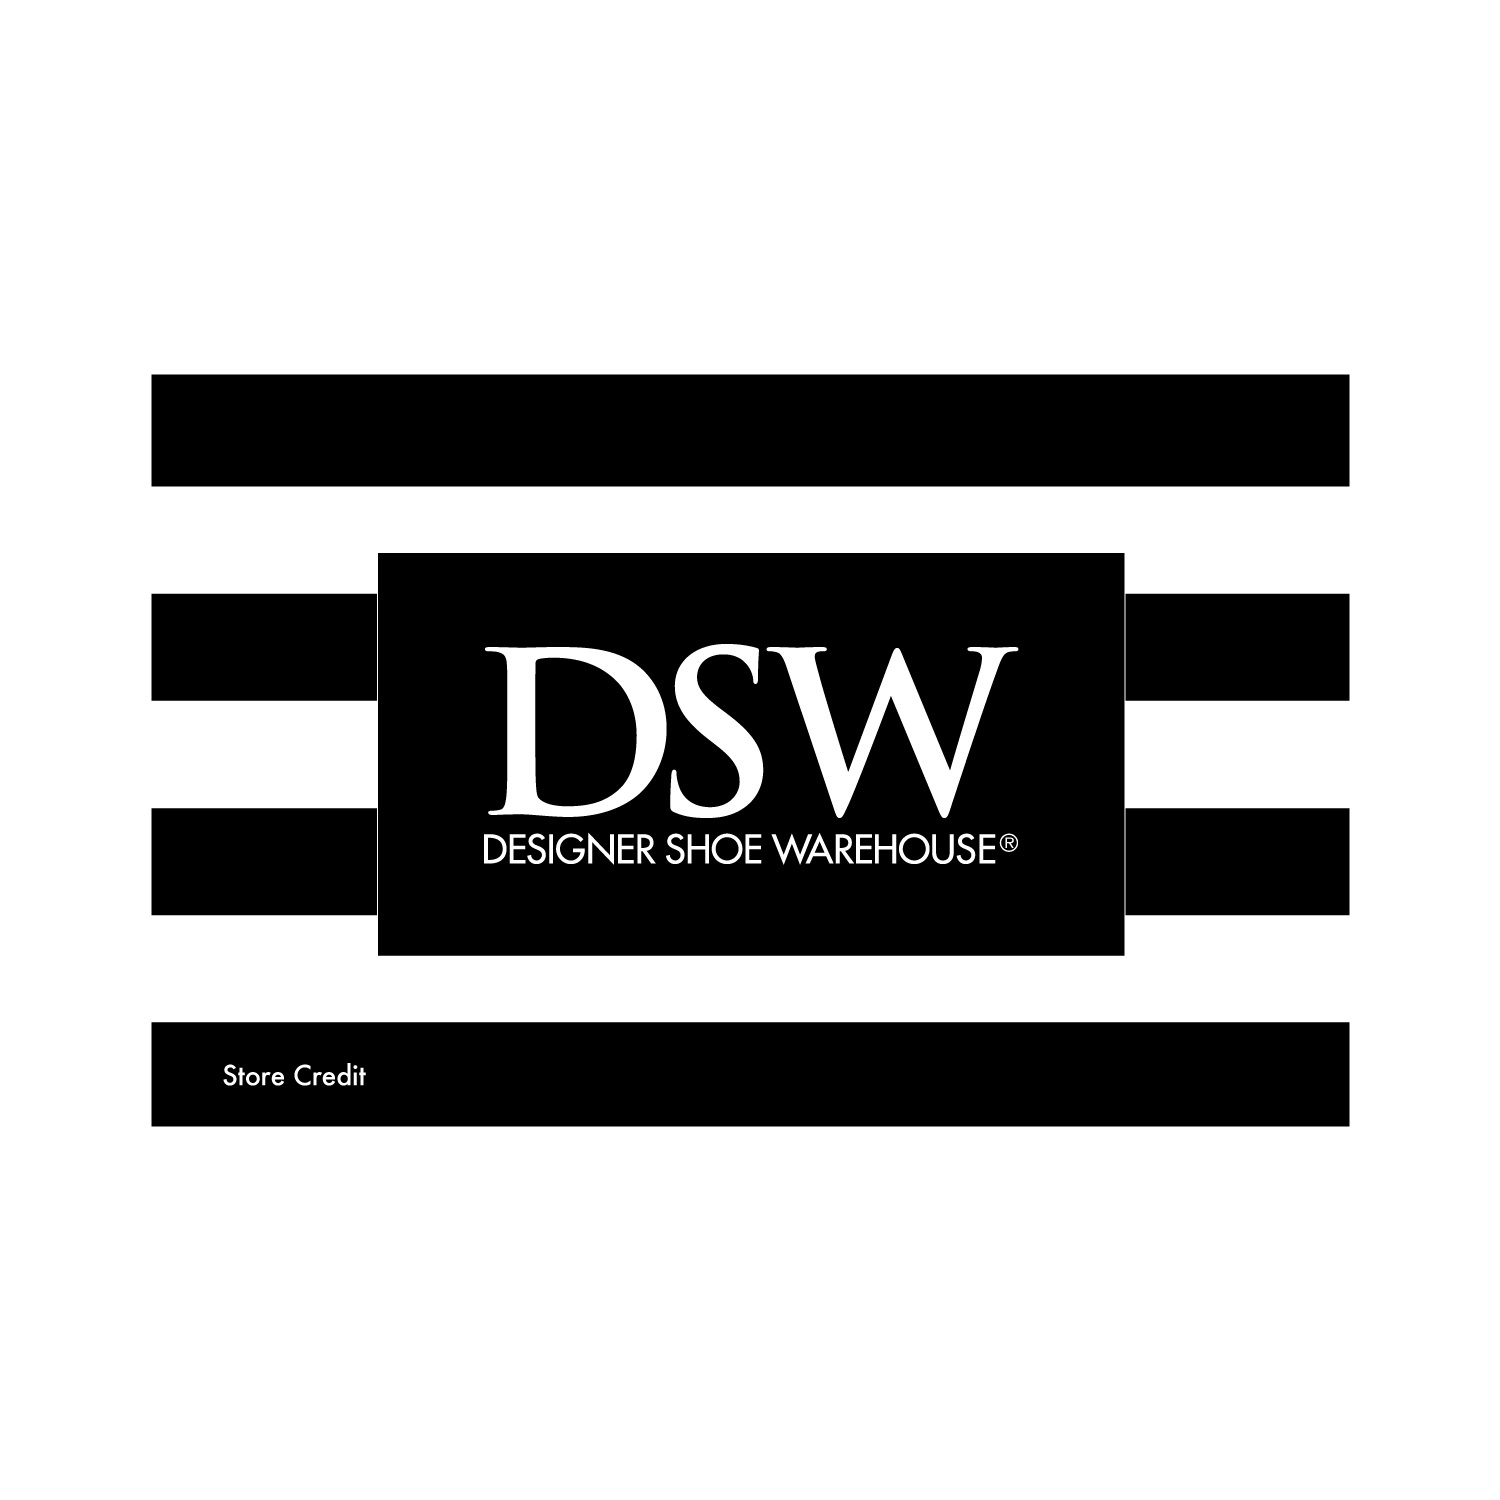 DSW Store Credit, 1 pk=20